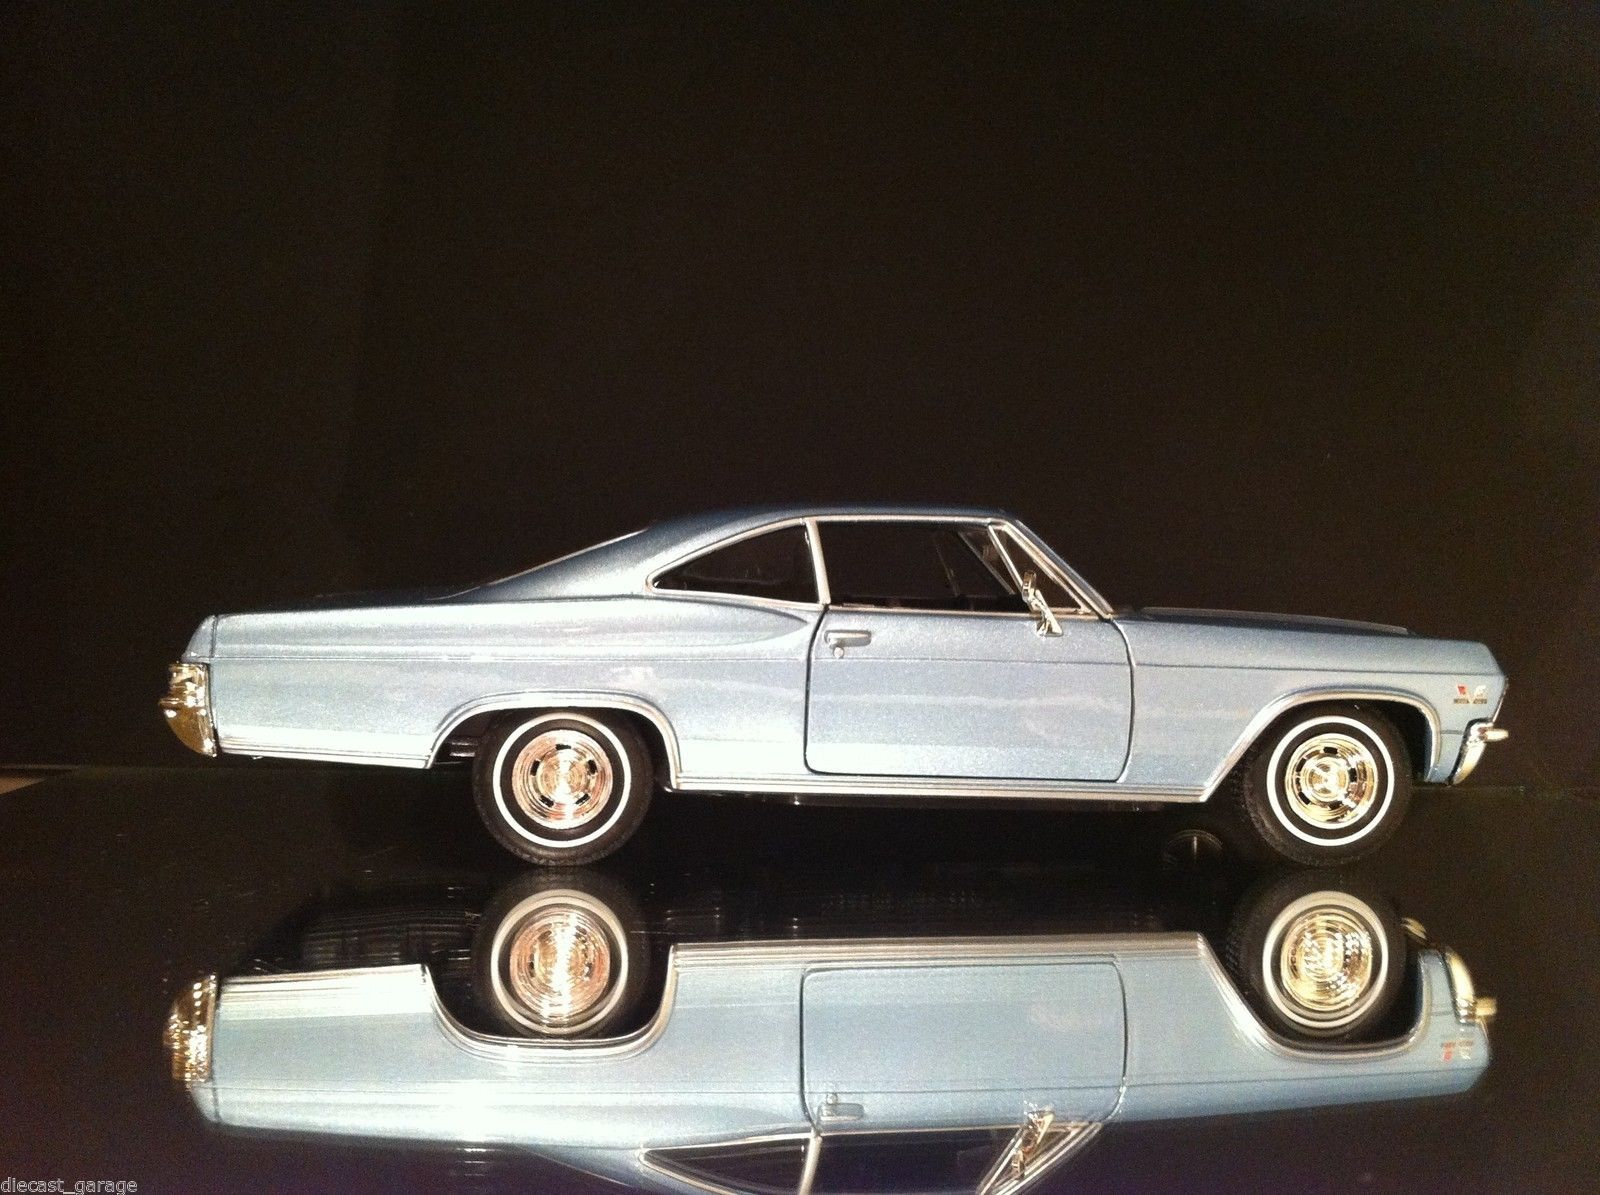 1965 Chevrolet Impala SS 1 24 Scale #Chev #Chevy V8 Muscle CAR ...